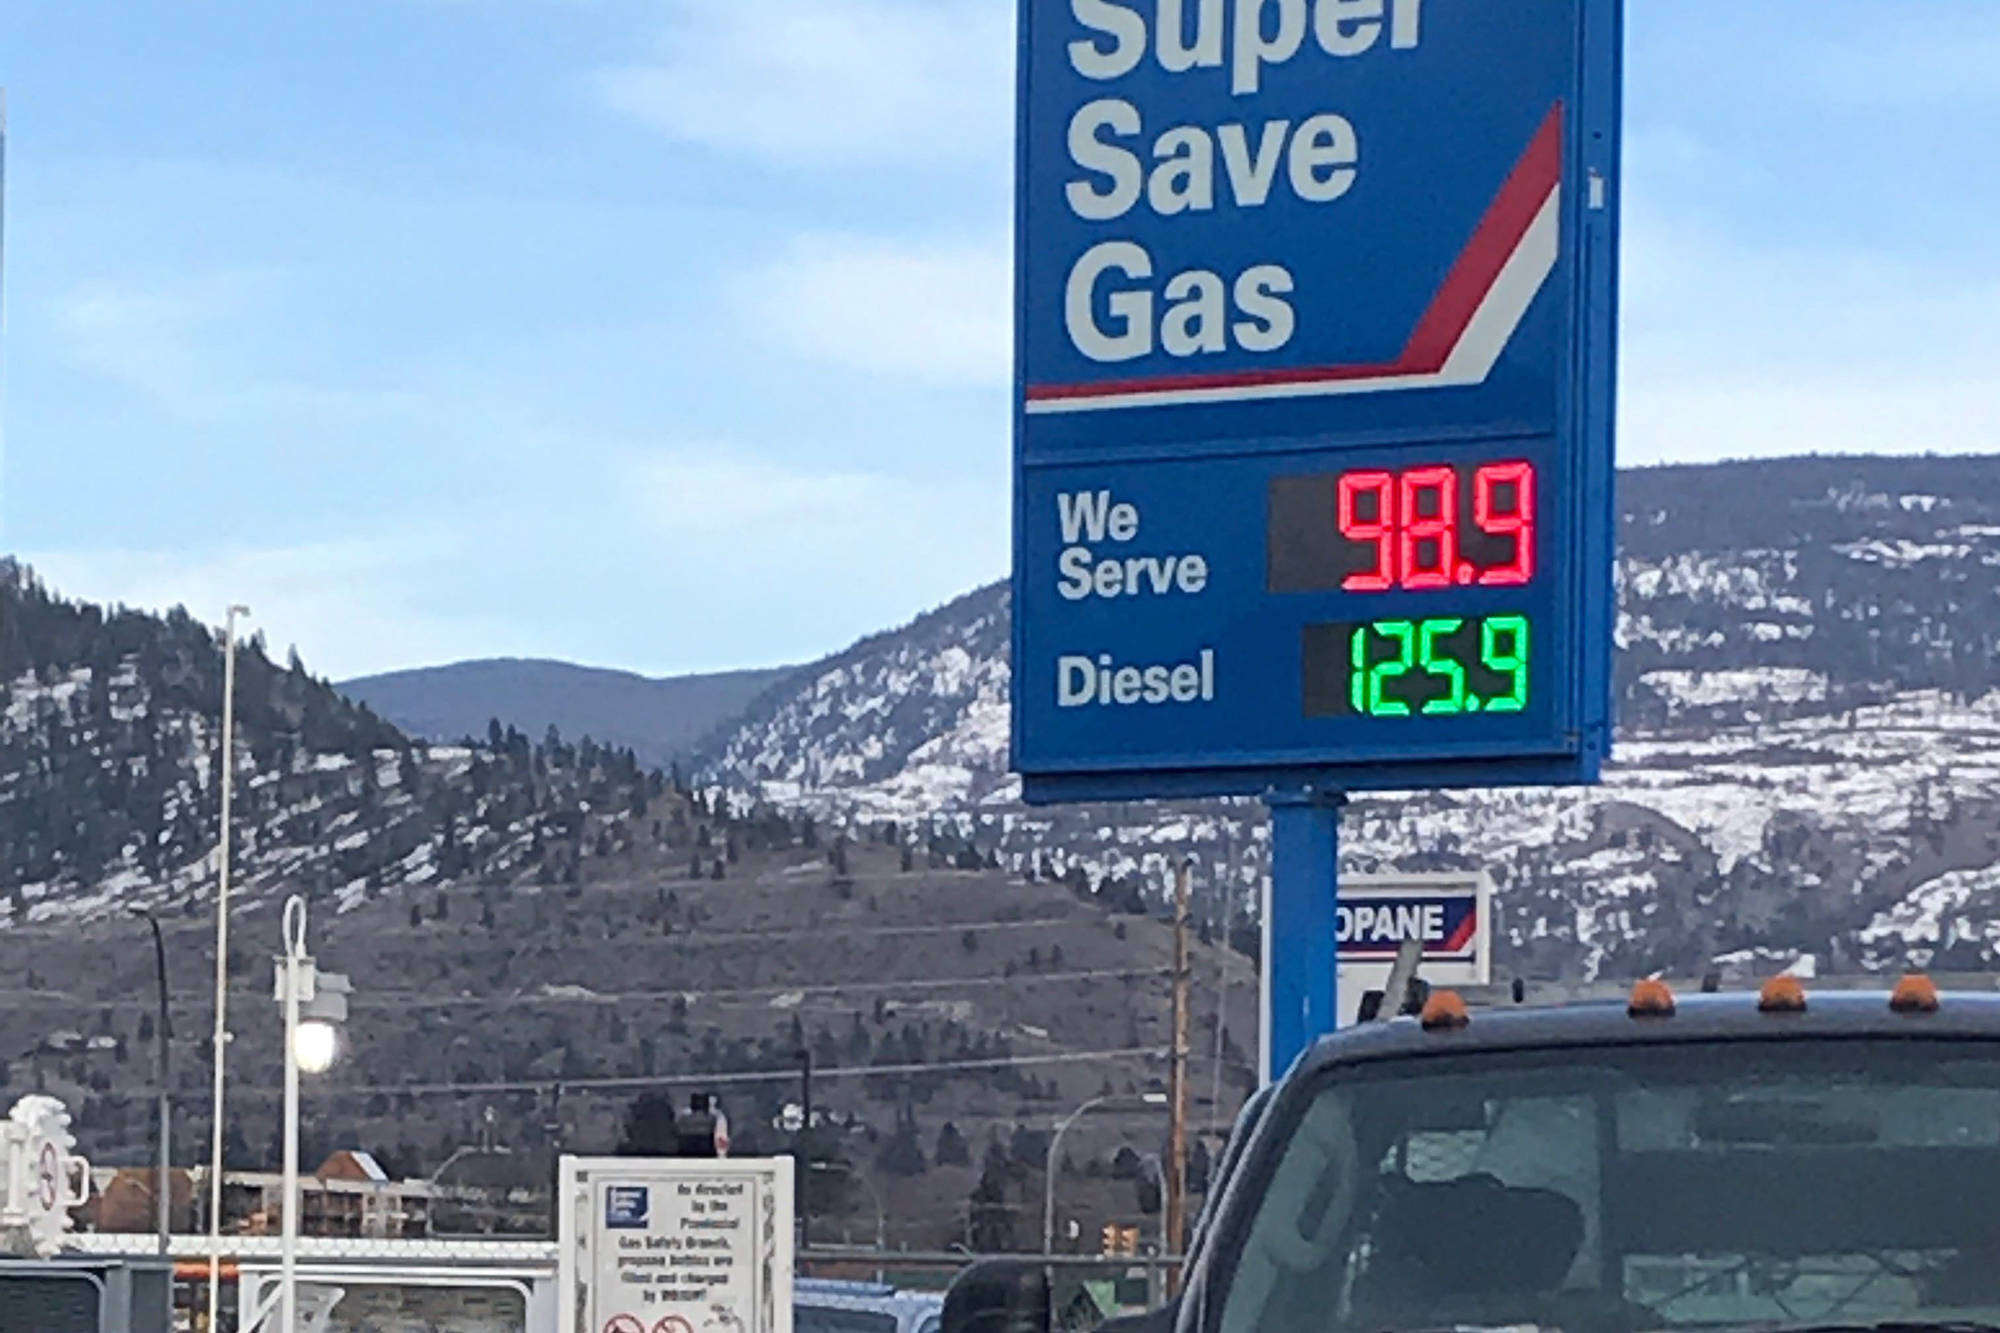 Gas prices at the Super Save in Penticton have dropped below a dollar a litre. (Danah Phillips contributed photo)